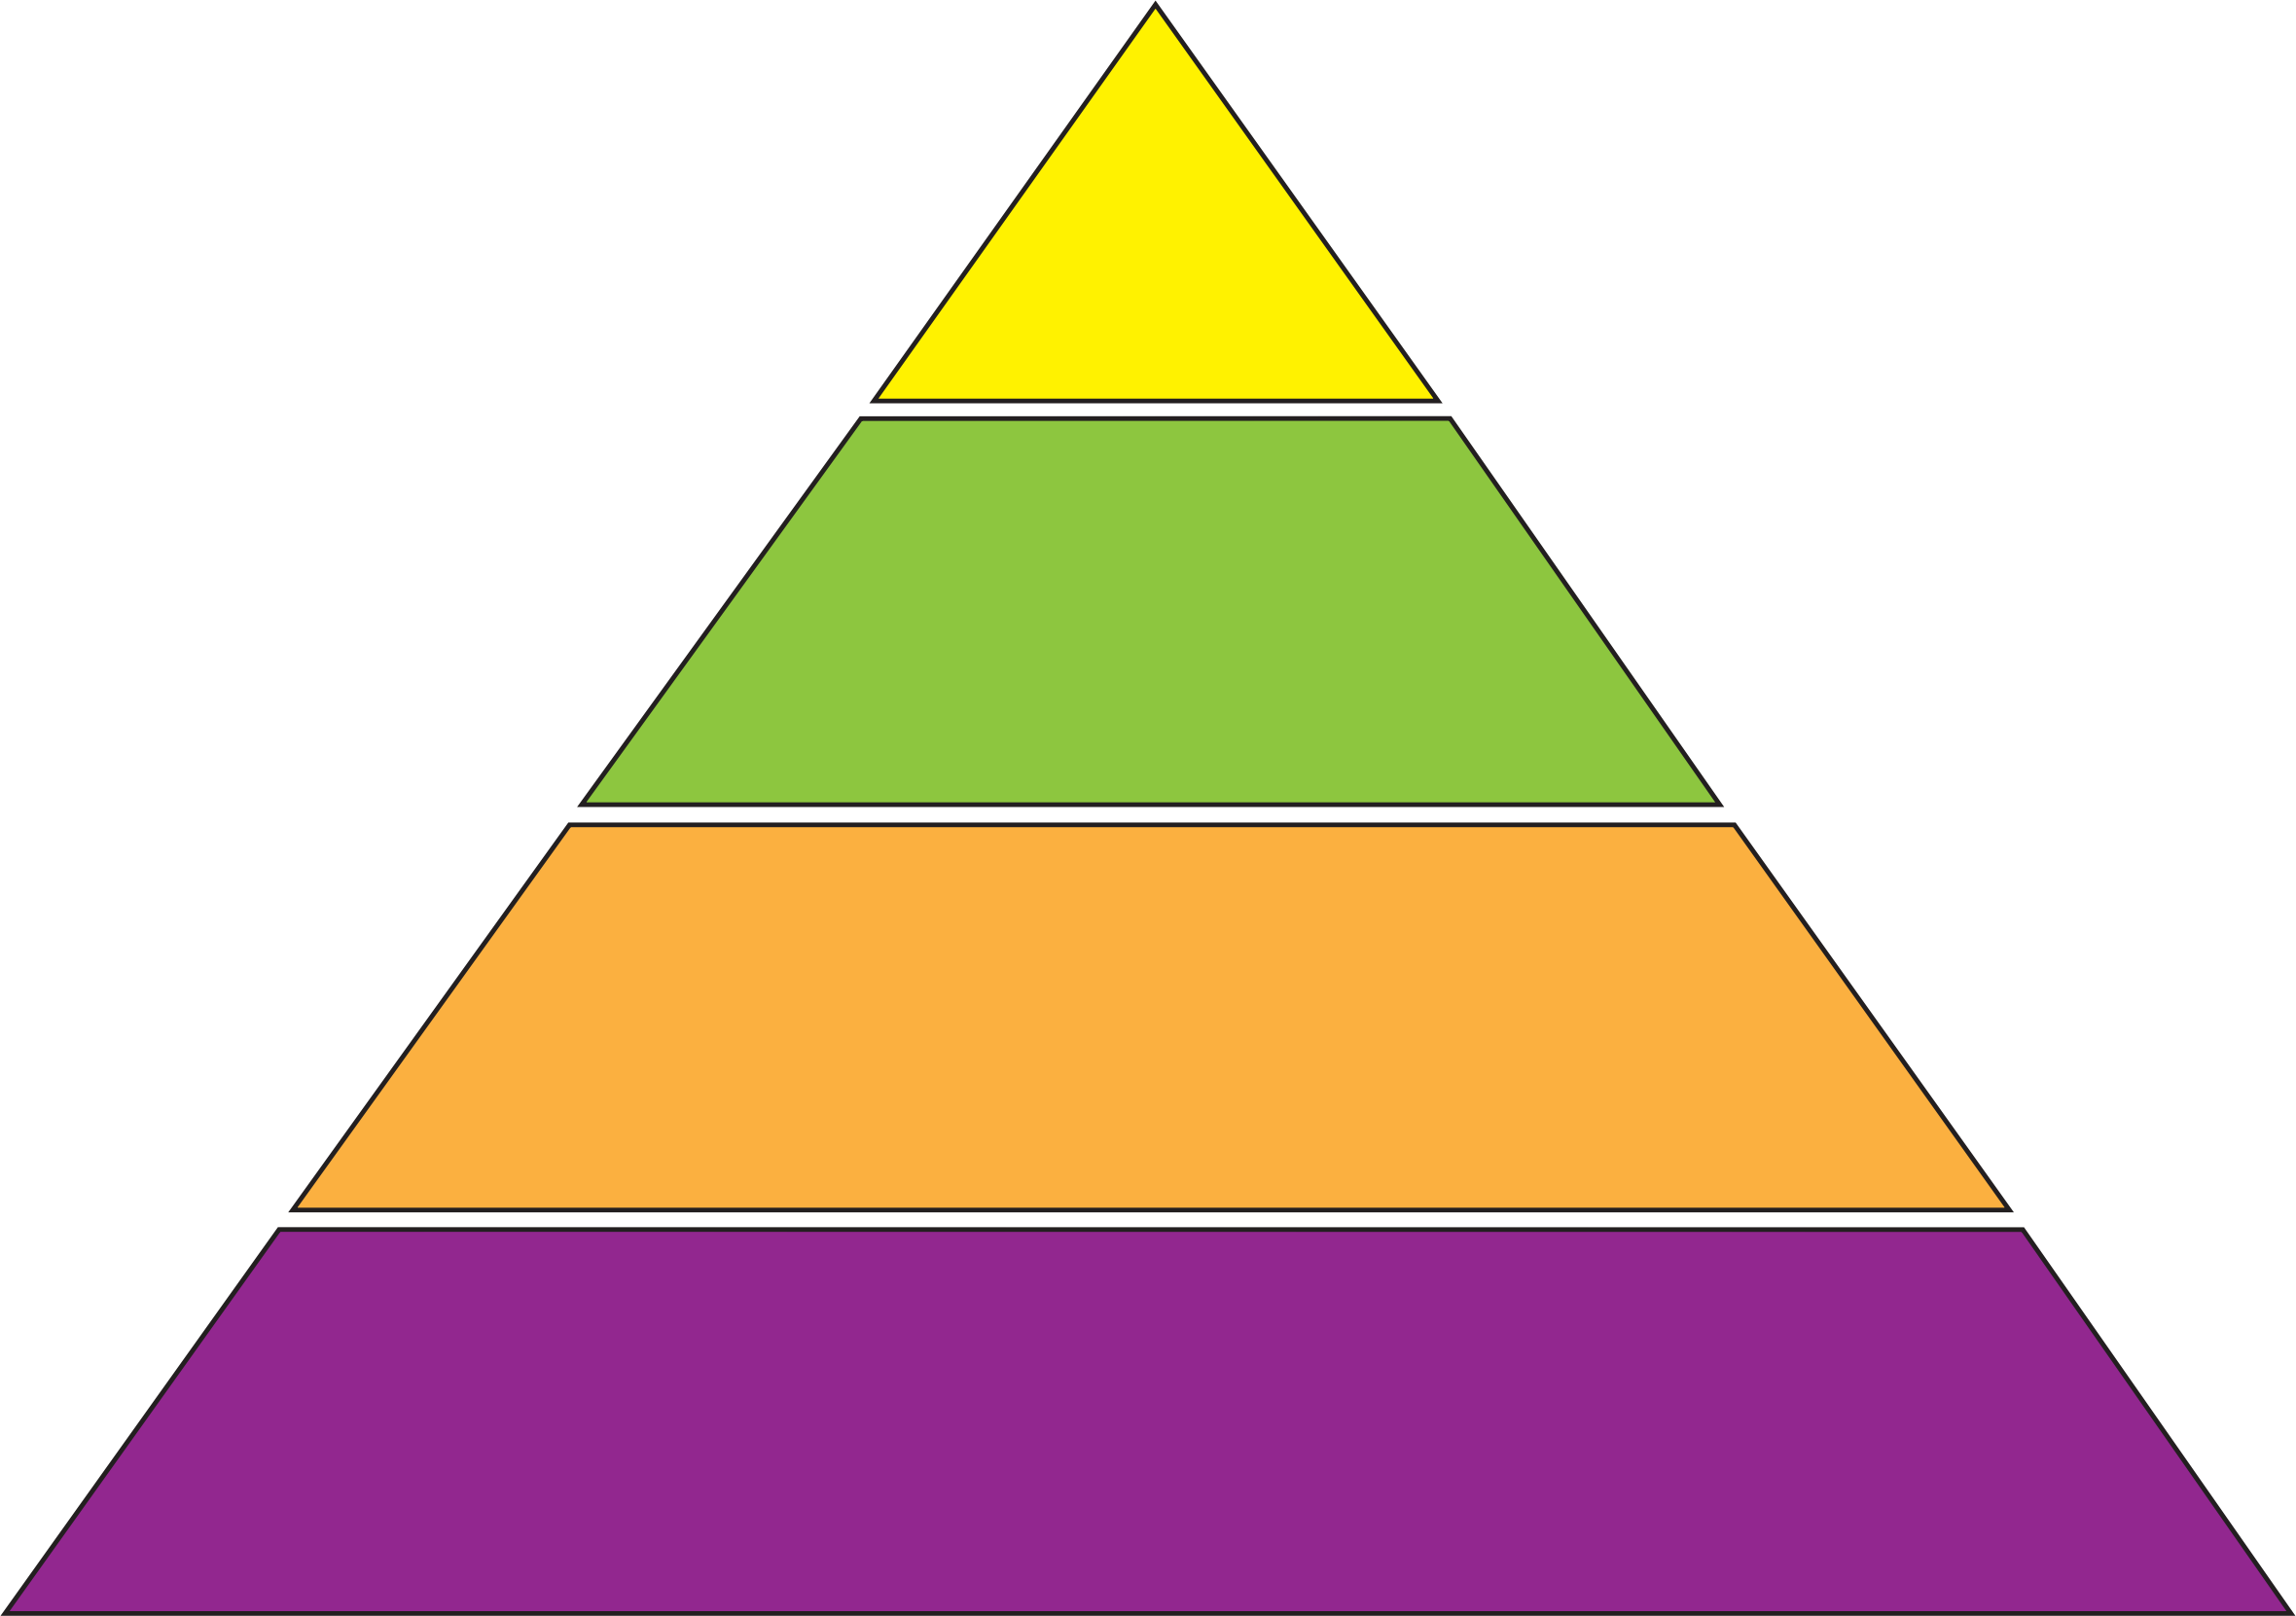 Clipart - Concept Pyramid Diagram